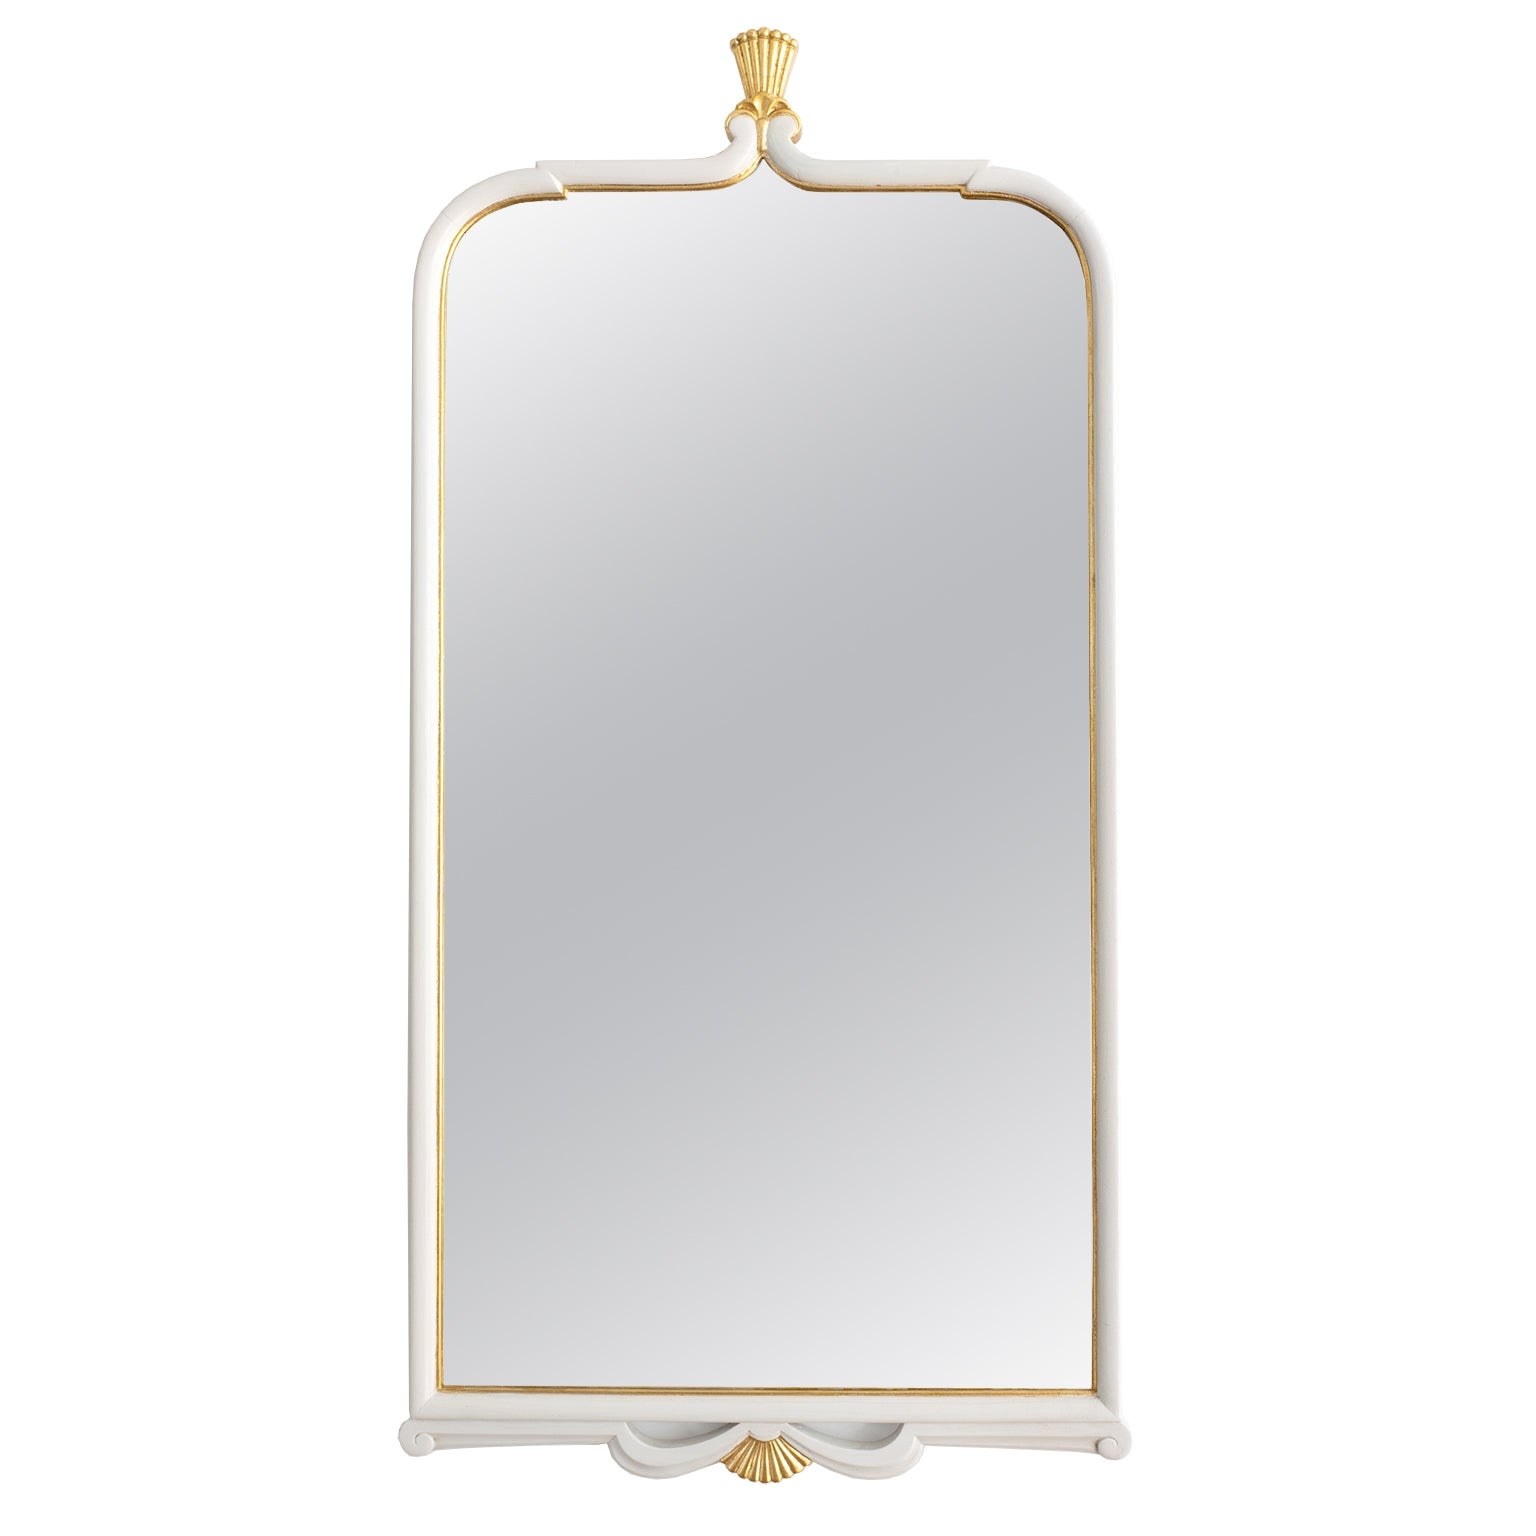 Swedish Grace Swedish Art Deco Mirror with Gold Crown details